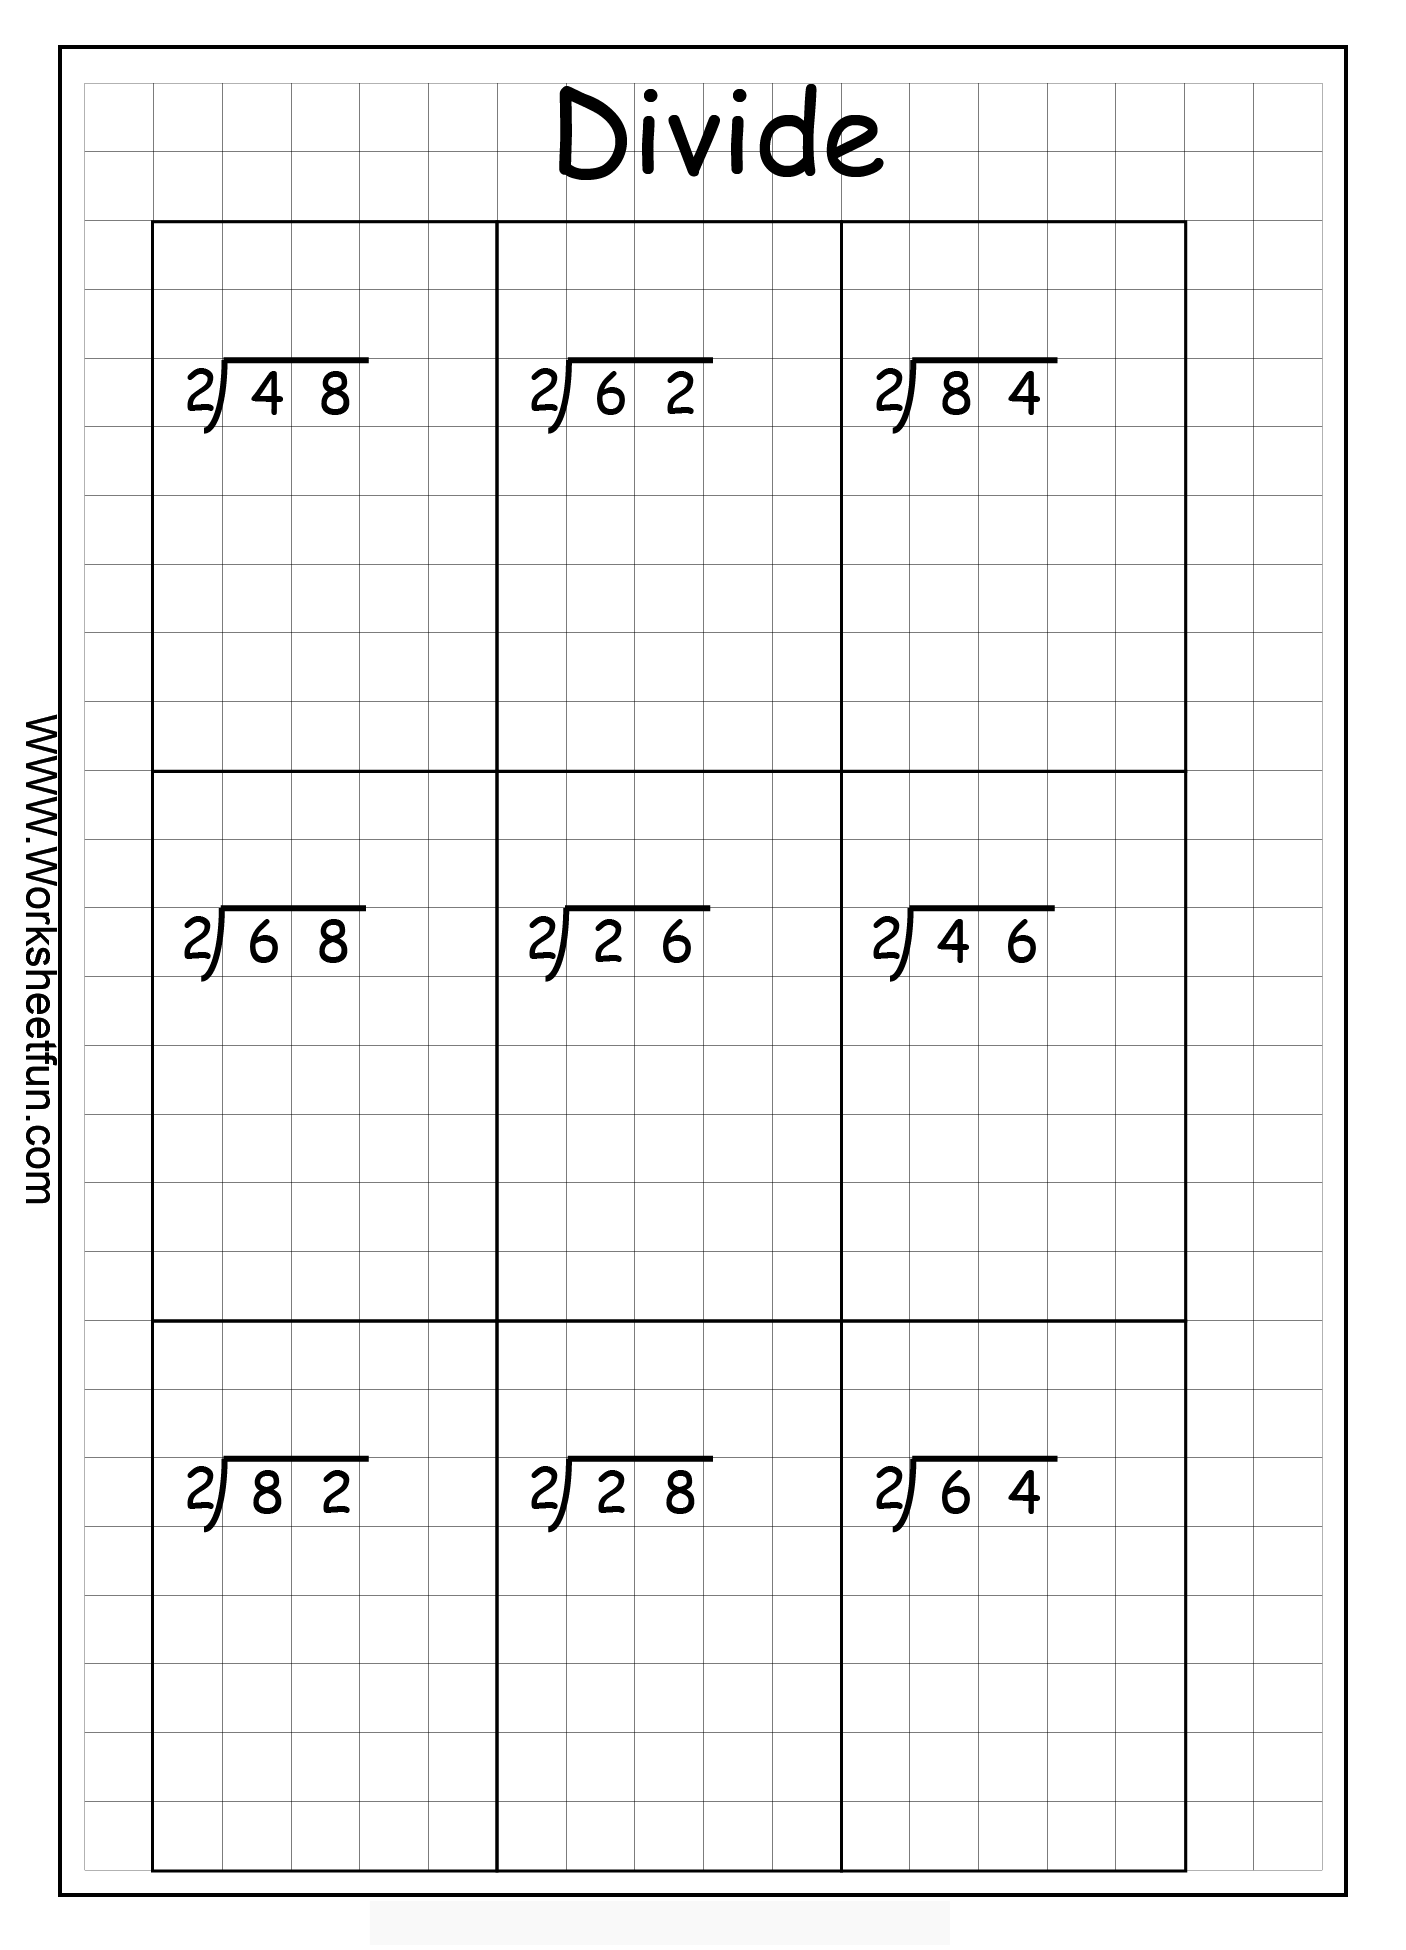 Long Division 2 Digits By 1 Digit No Remainder 10 Worksheets – Long Division with Remainders Worksheet